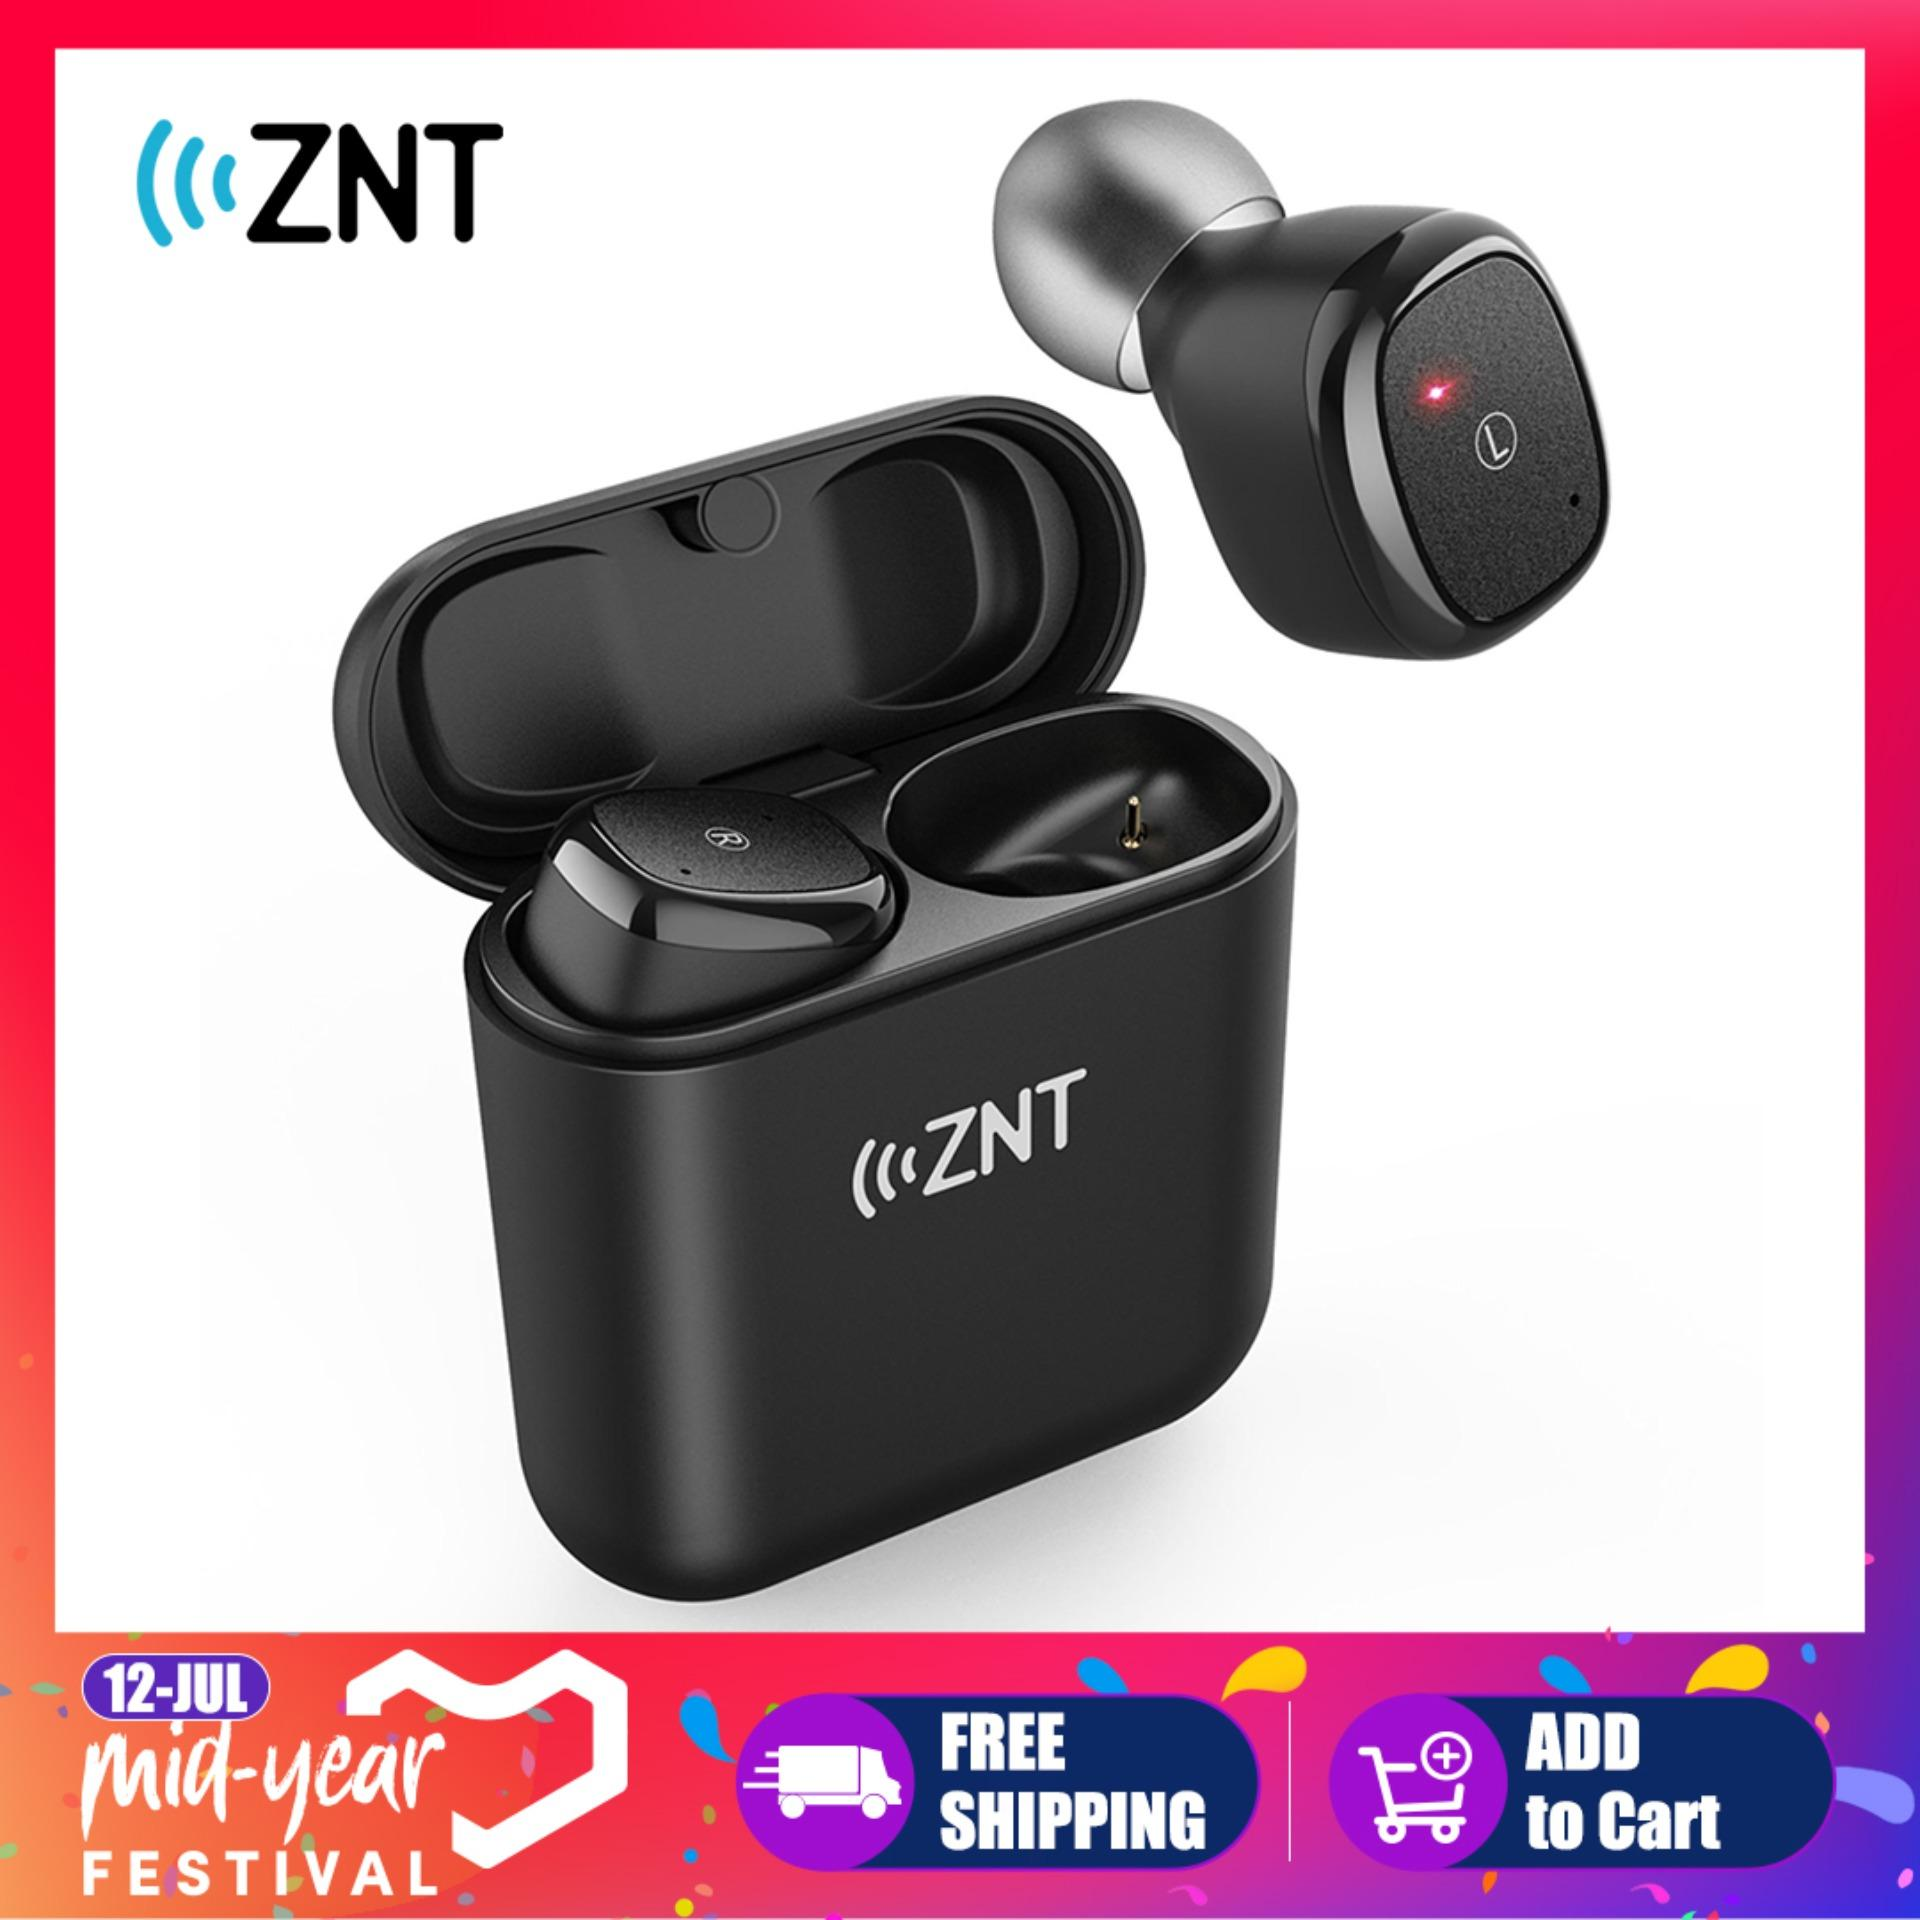 8d4c0f23daa ZNT D06-L True Wireless Earbuds with Bluetooth 5.0 and Hi-Fi Sound Quality